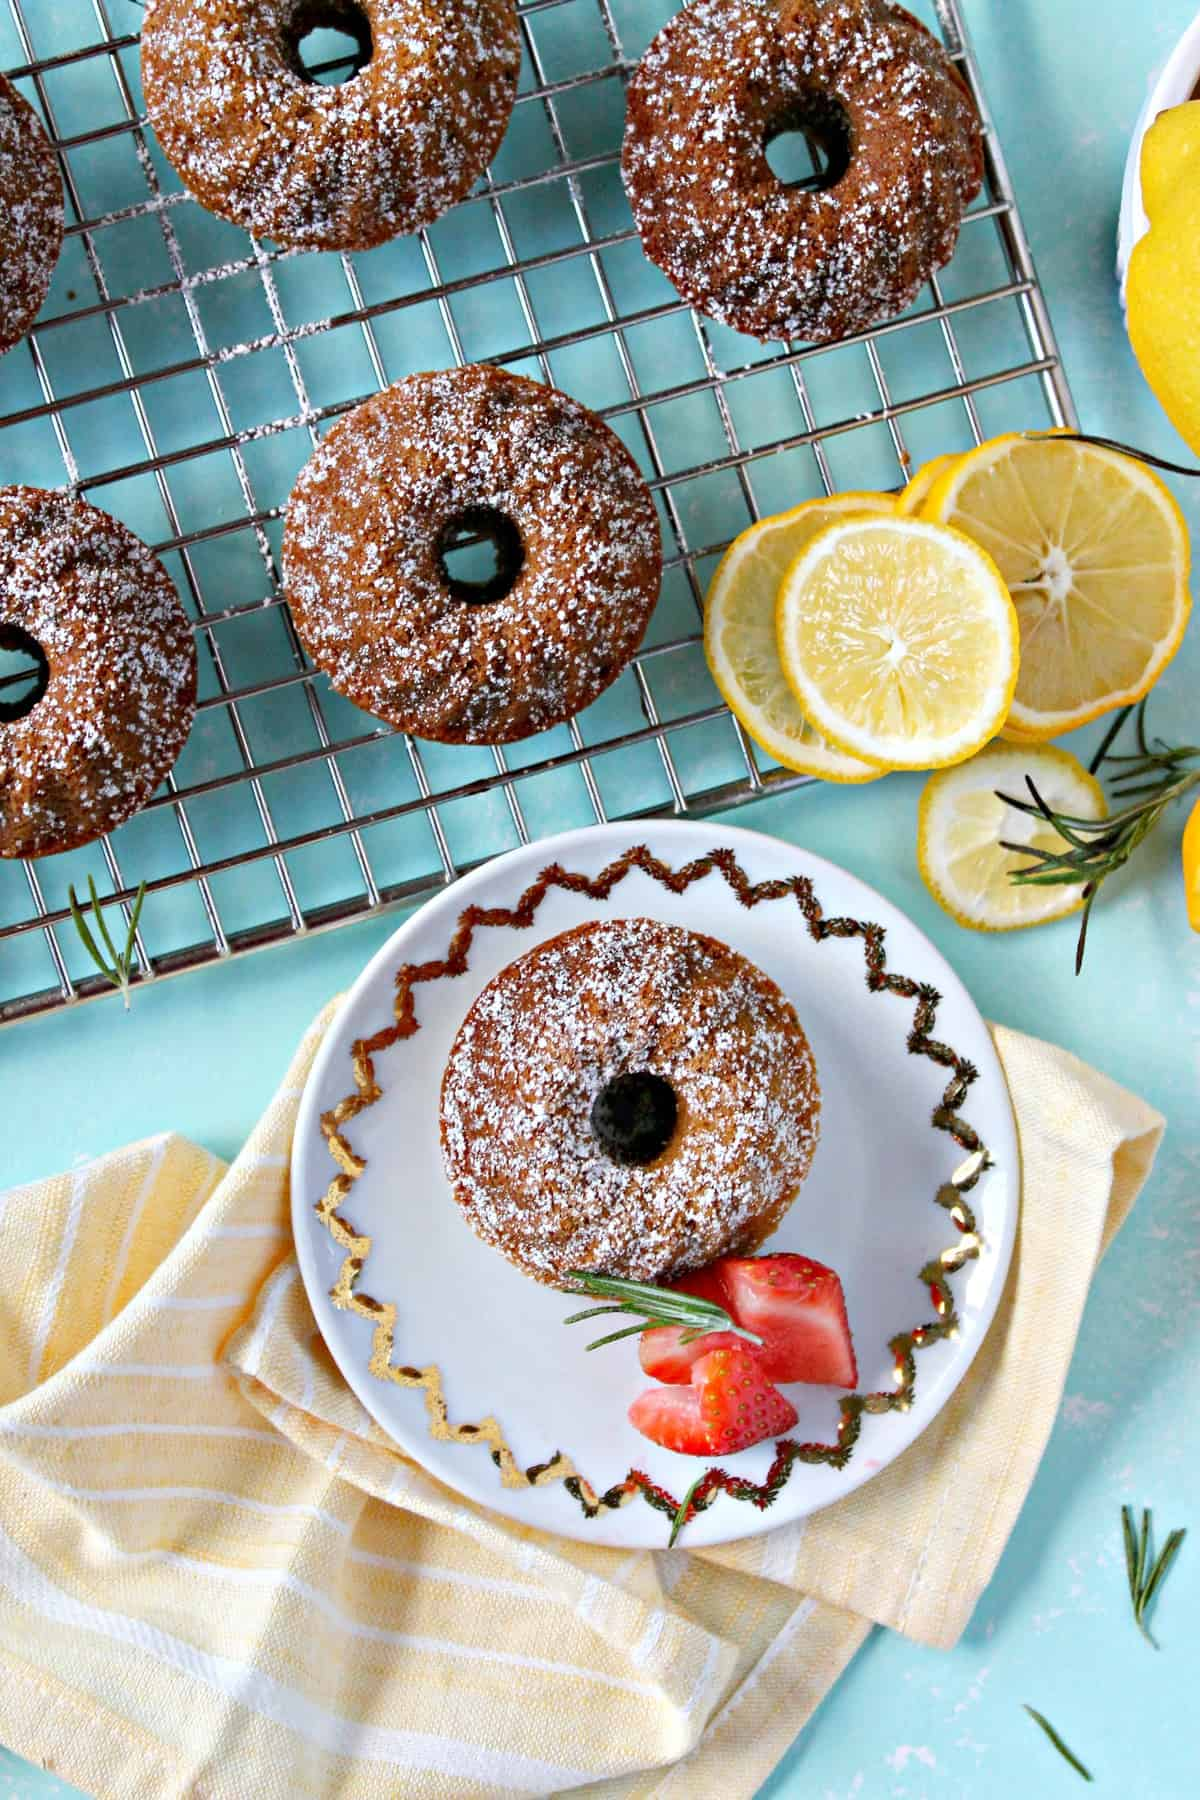 A dusting of powdered sugar gives these mini lemon rosemary bundt cakes an extra hint of sweetness